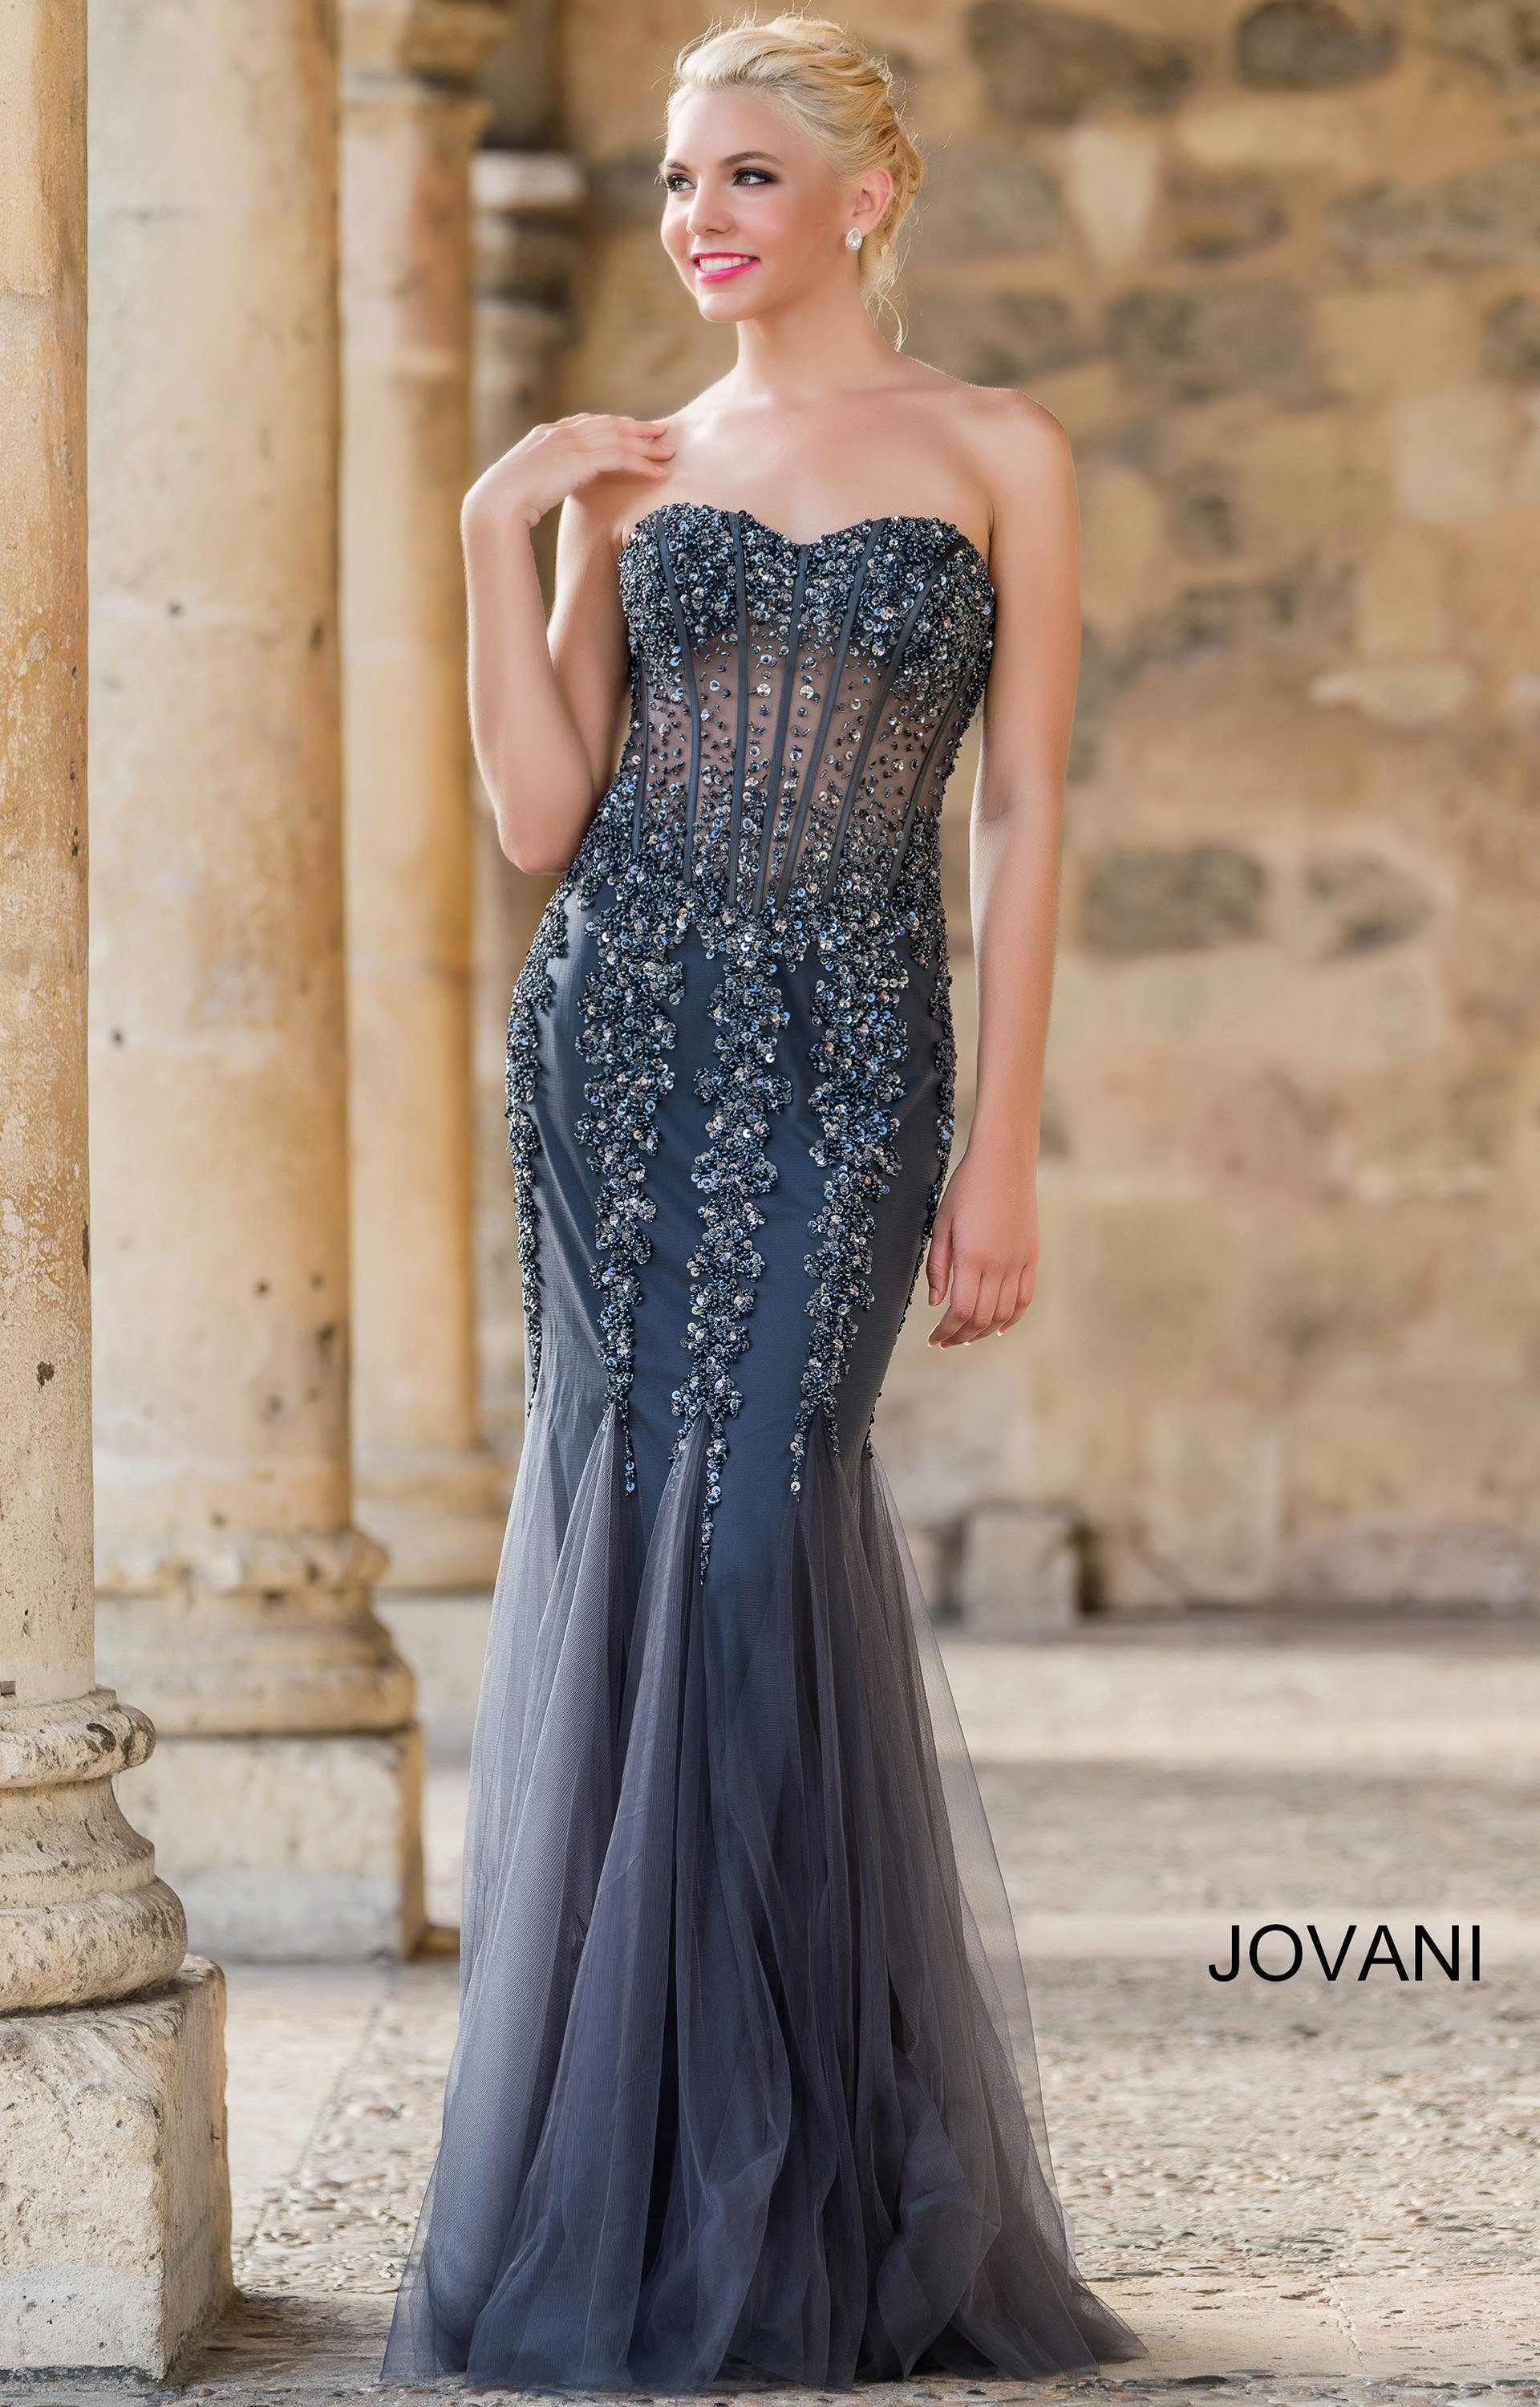 Jovani 5908 Crystal Sweetheart Strapless Mermaid Dress